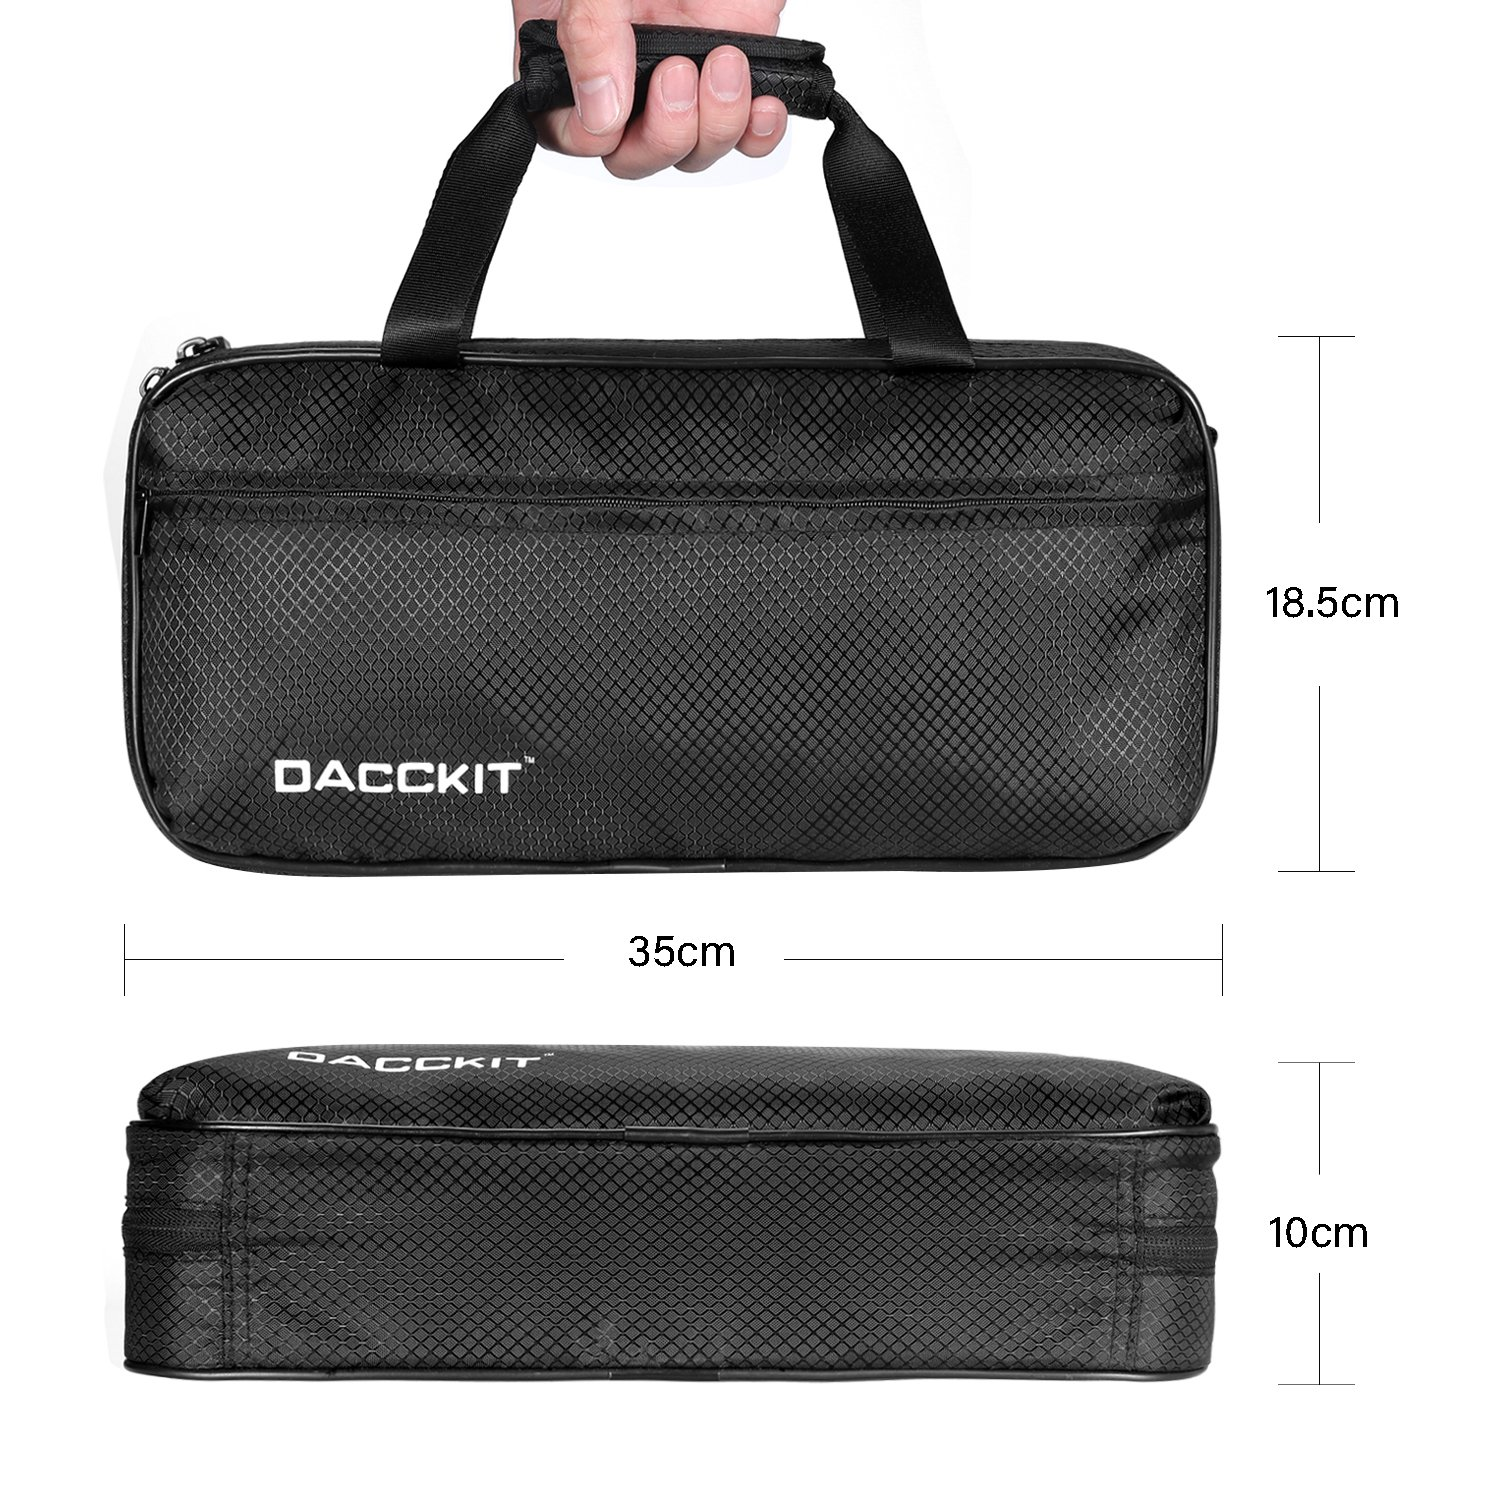 DJI Osmo Mobile 2 Carrying Case by DACCKIT - fit for DJI osmo mobile 2 Handheld Smartphone Gimbal with tripod combo, Extension Stick, Base by DACCKIT (Image #6)